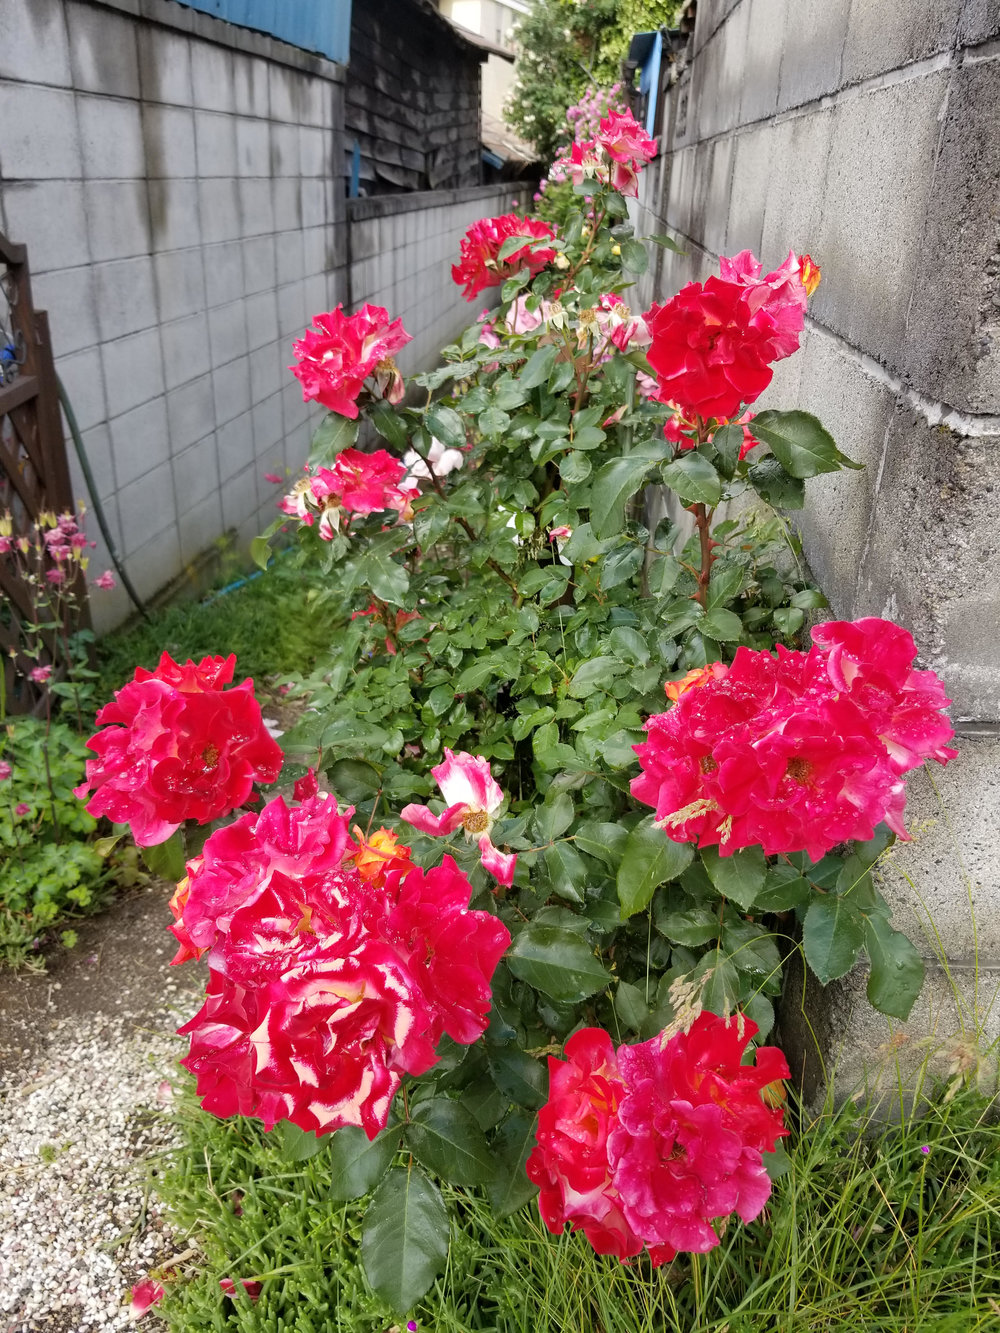 The Roses of Matsumoto. Photo by J. Bonney (2018).